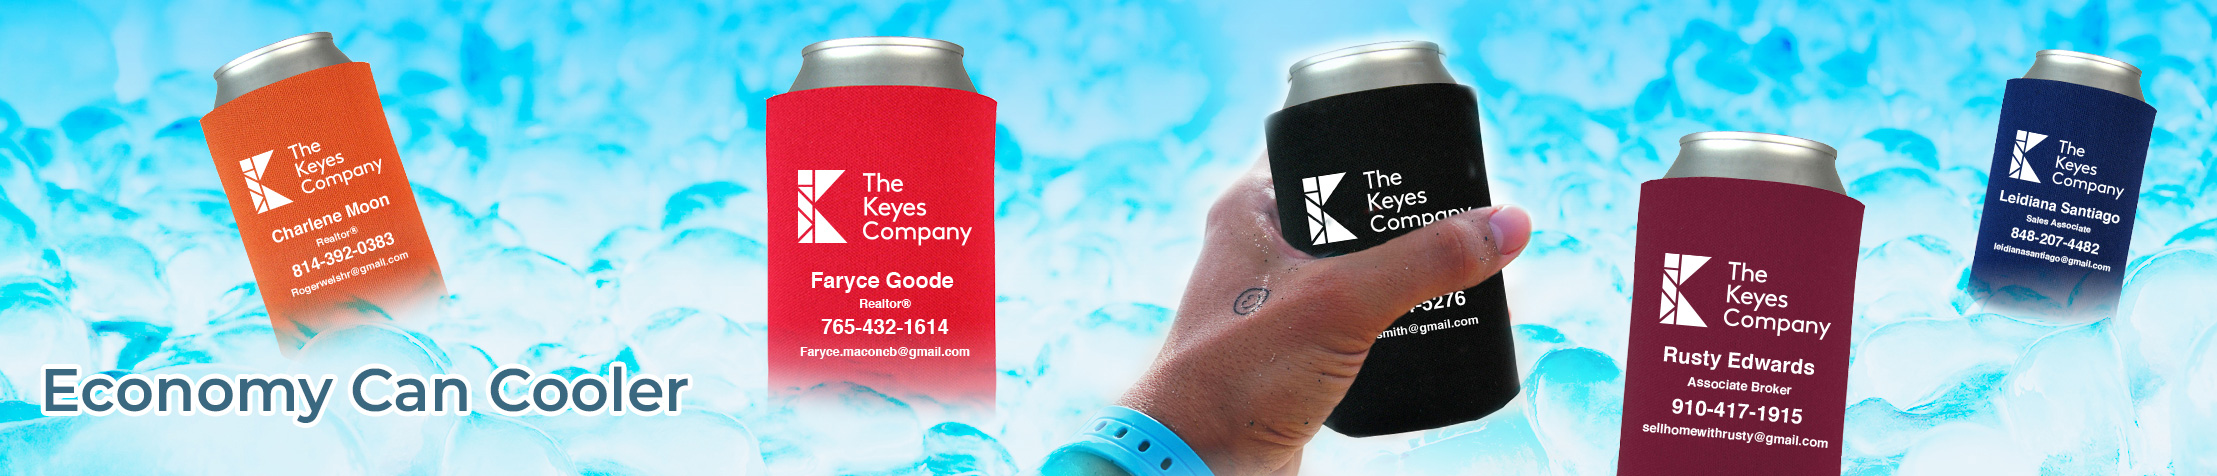 The Keyes Company Real Estate Economy Can Cooler - The Keyes Company  personalized realtor promotional products | BestPrintBuy.com